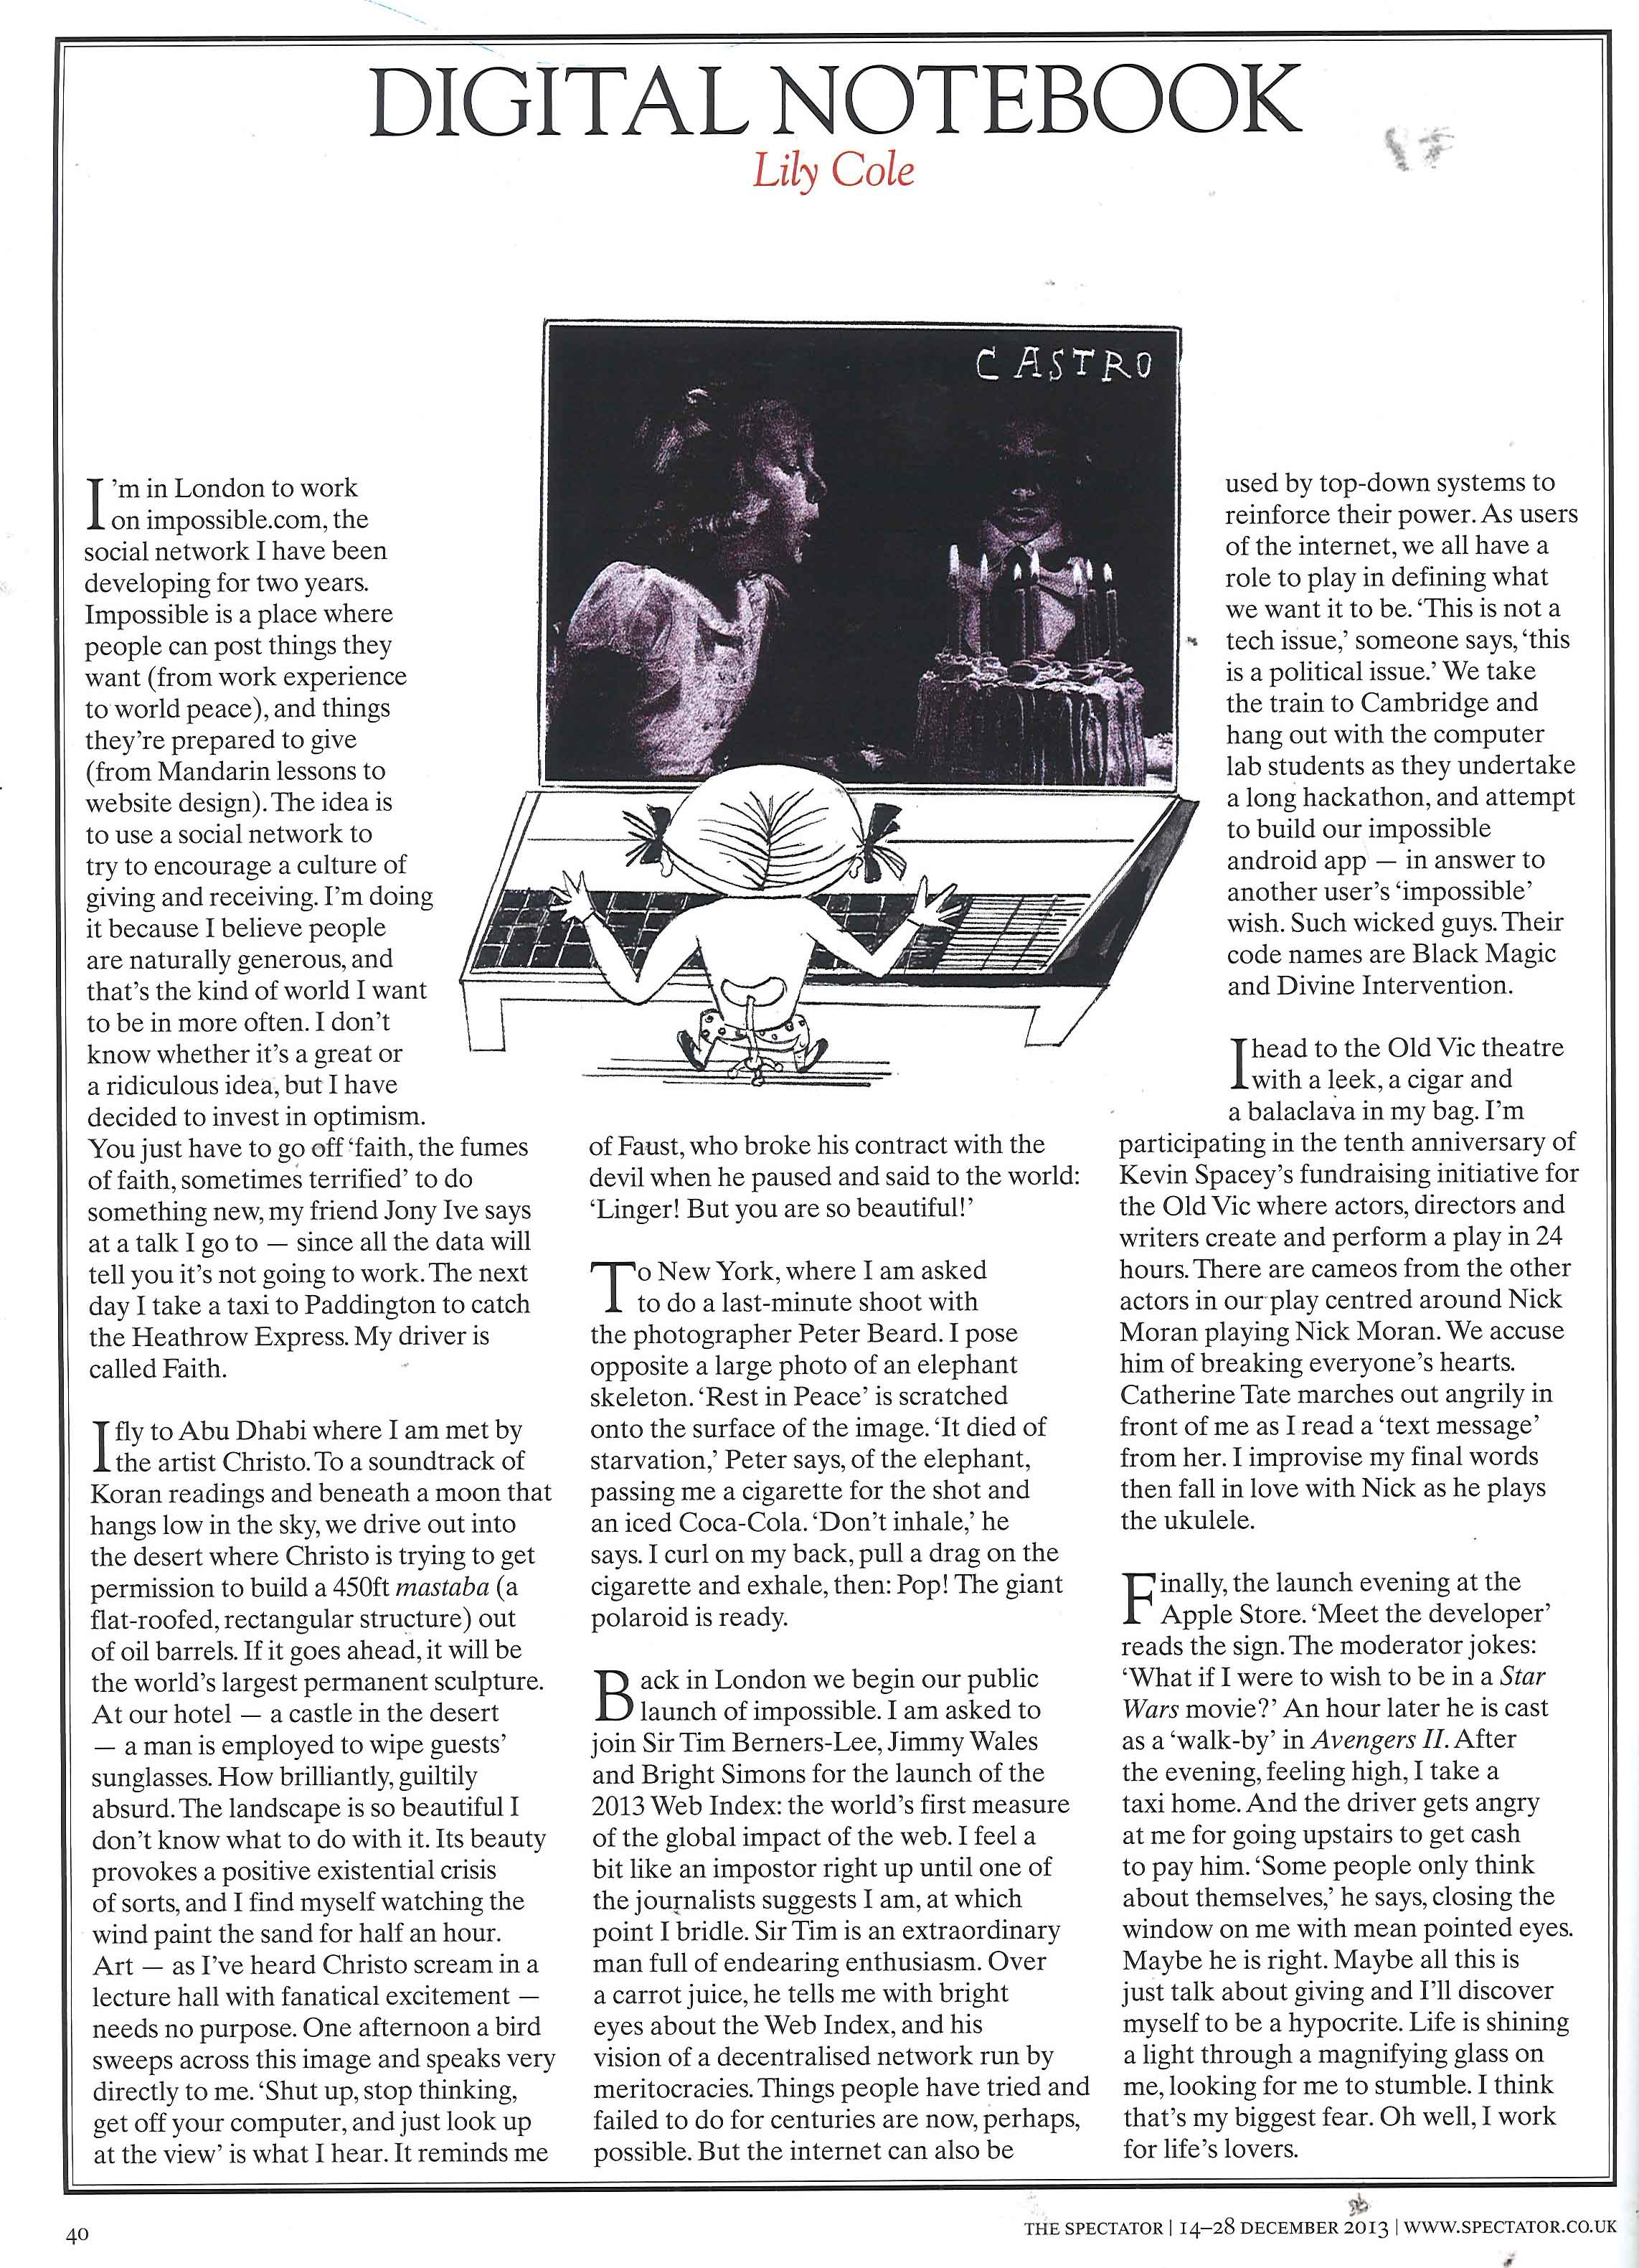 The Spectator, 12th December 2013, p. 40[2] copy